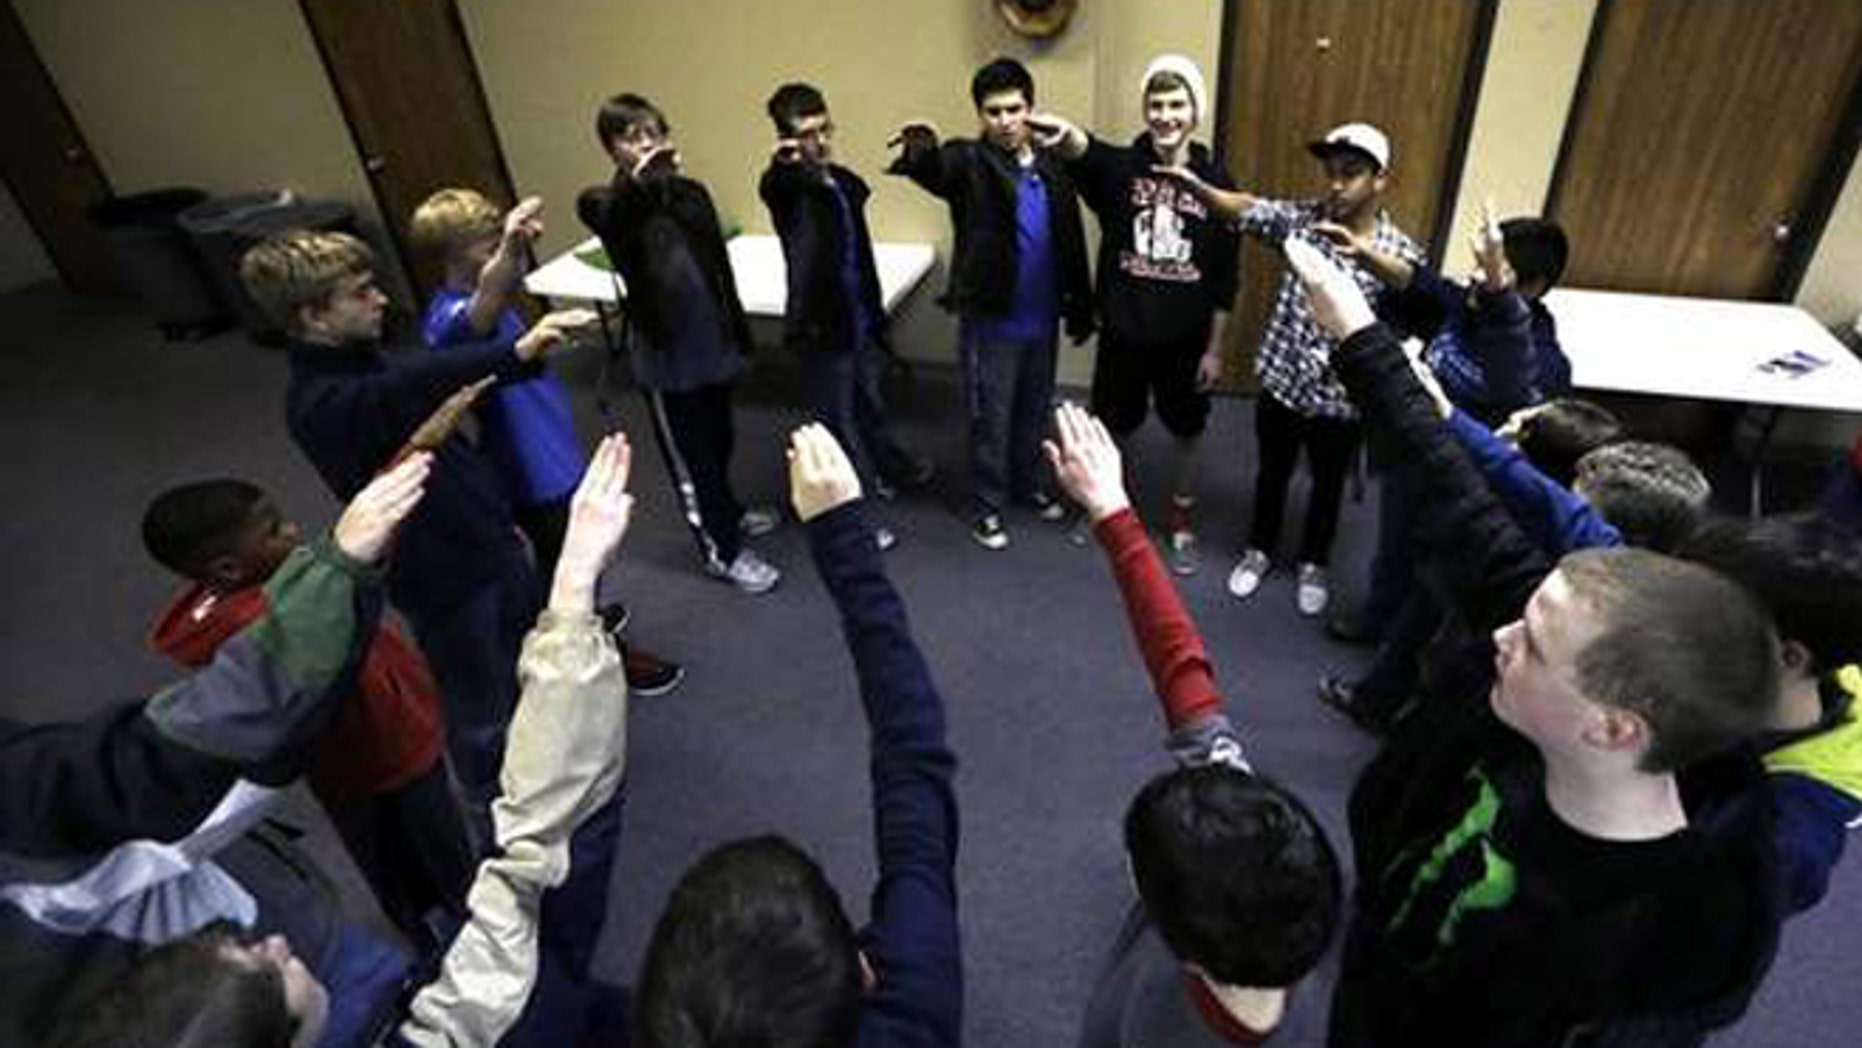 """Trail Life members move their arms as they and sing """"Taps"""" in a circle during a meeting in North Richland Hills, Texas. Trail Life USA, the new Christian-based alternative to the Boy Scouts of America, excludes openly gay members."""